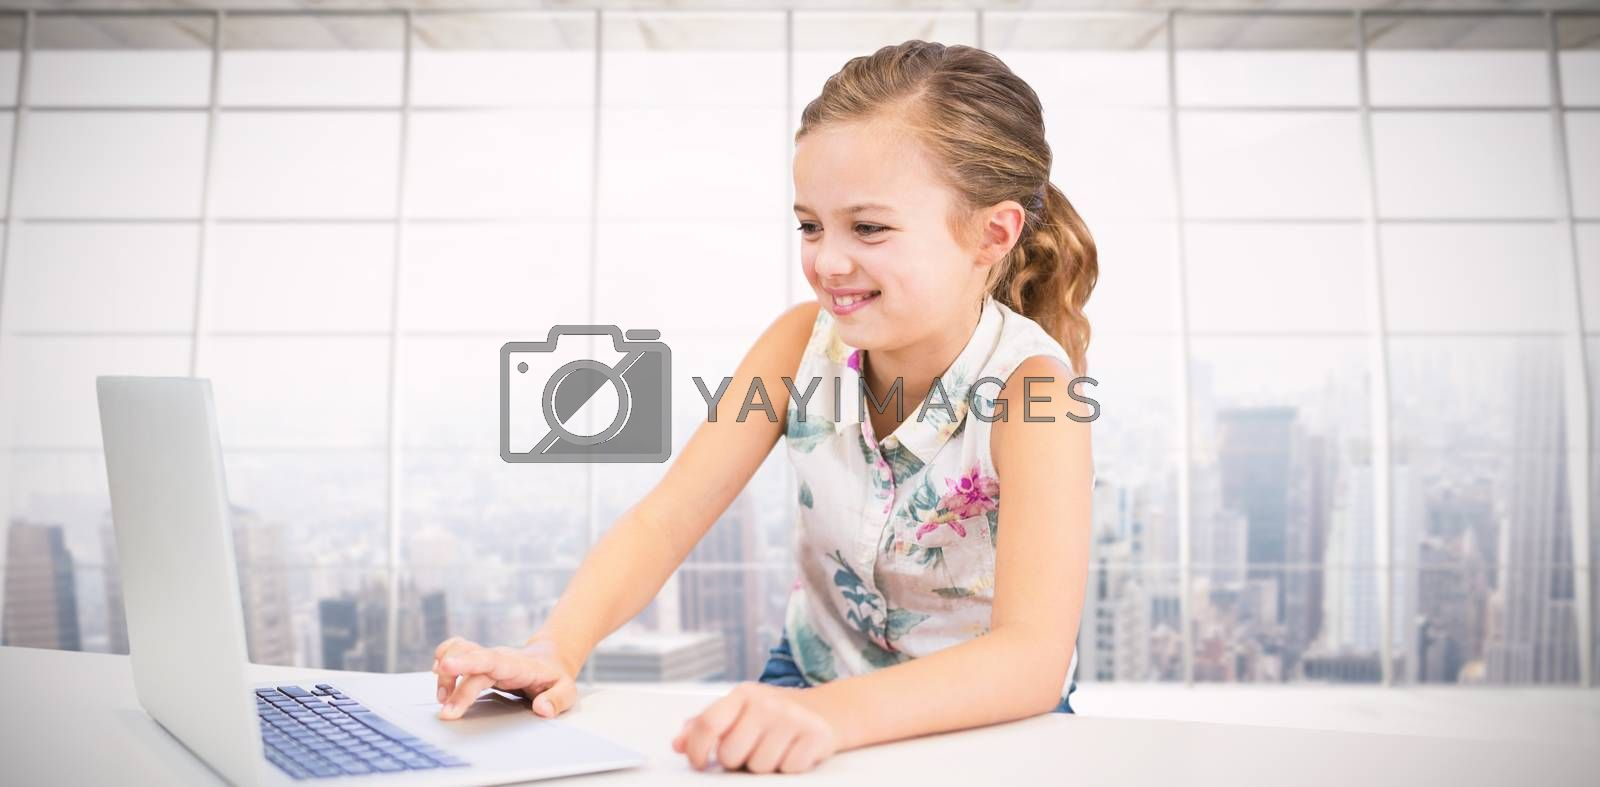 Composite image of girl using laptop at table by Wavebreakmedia